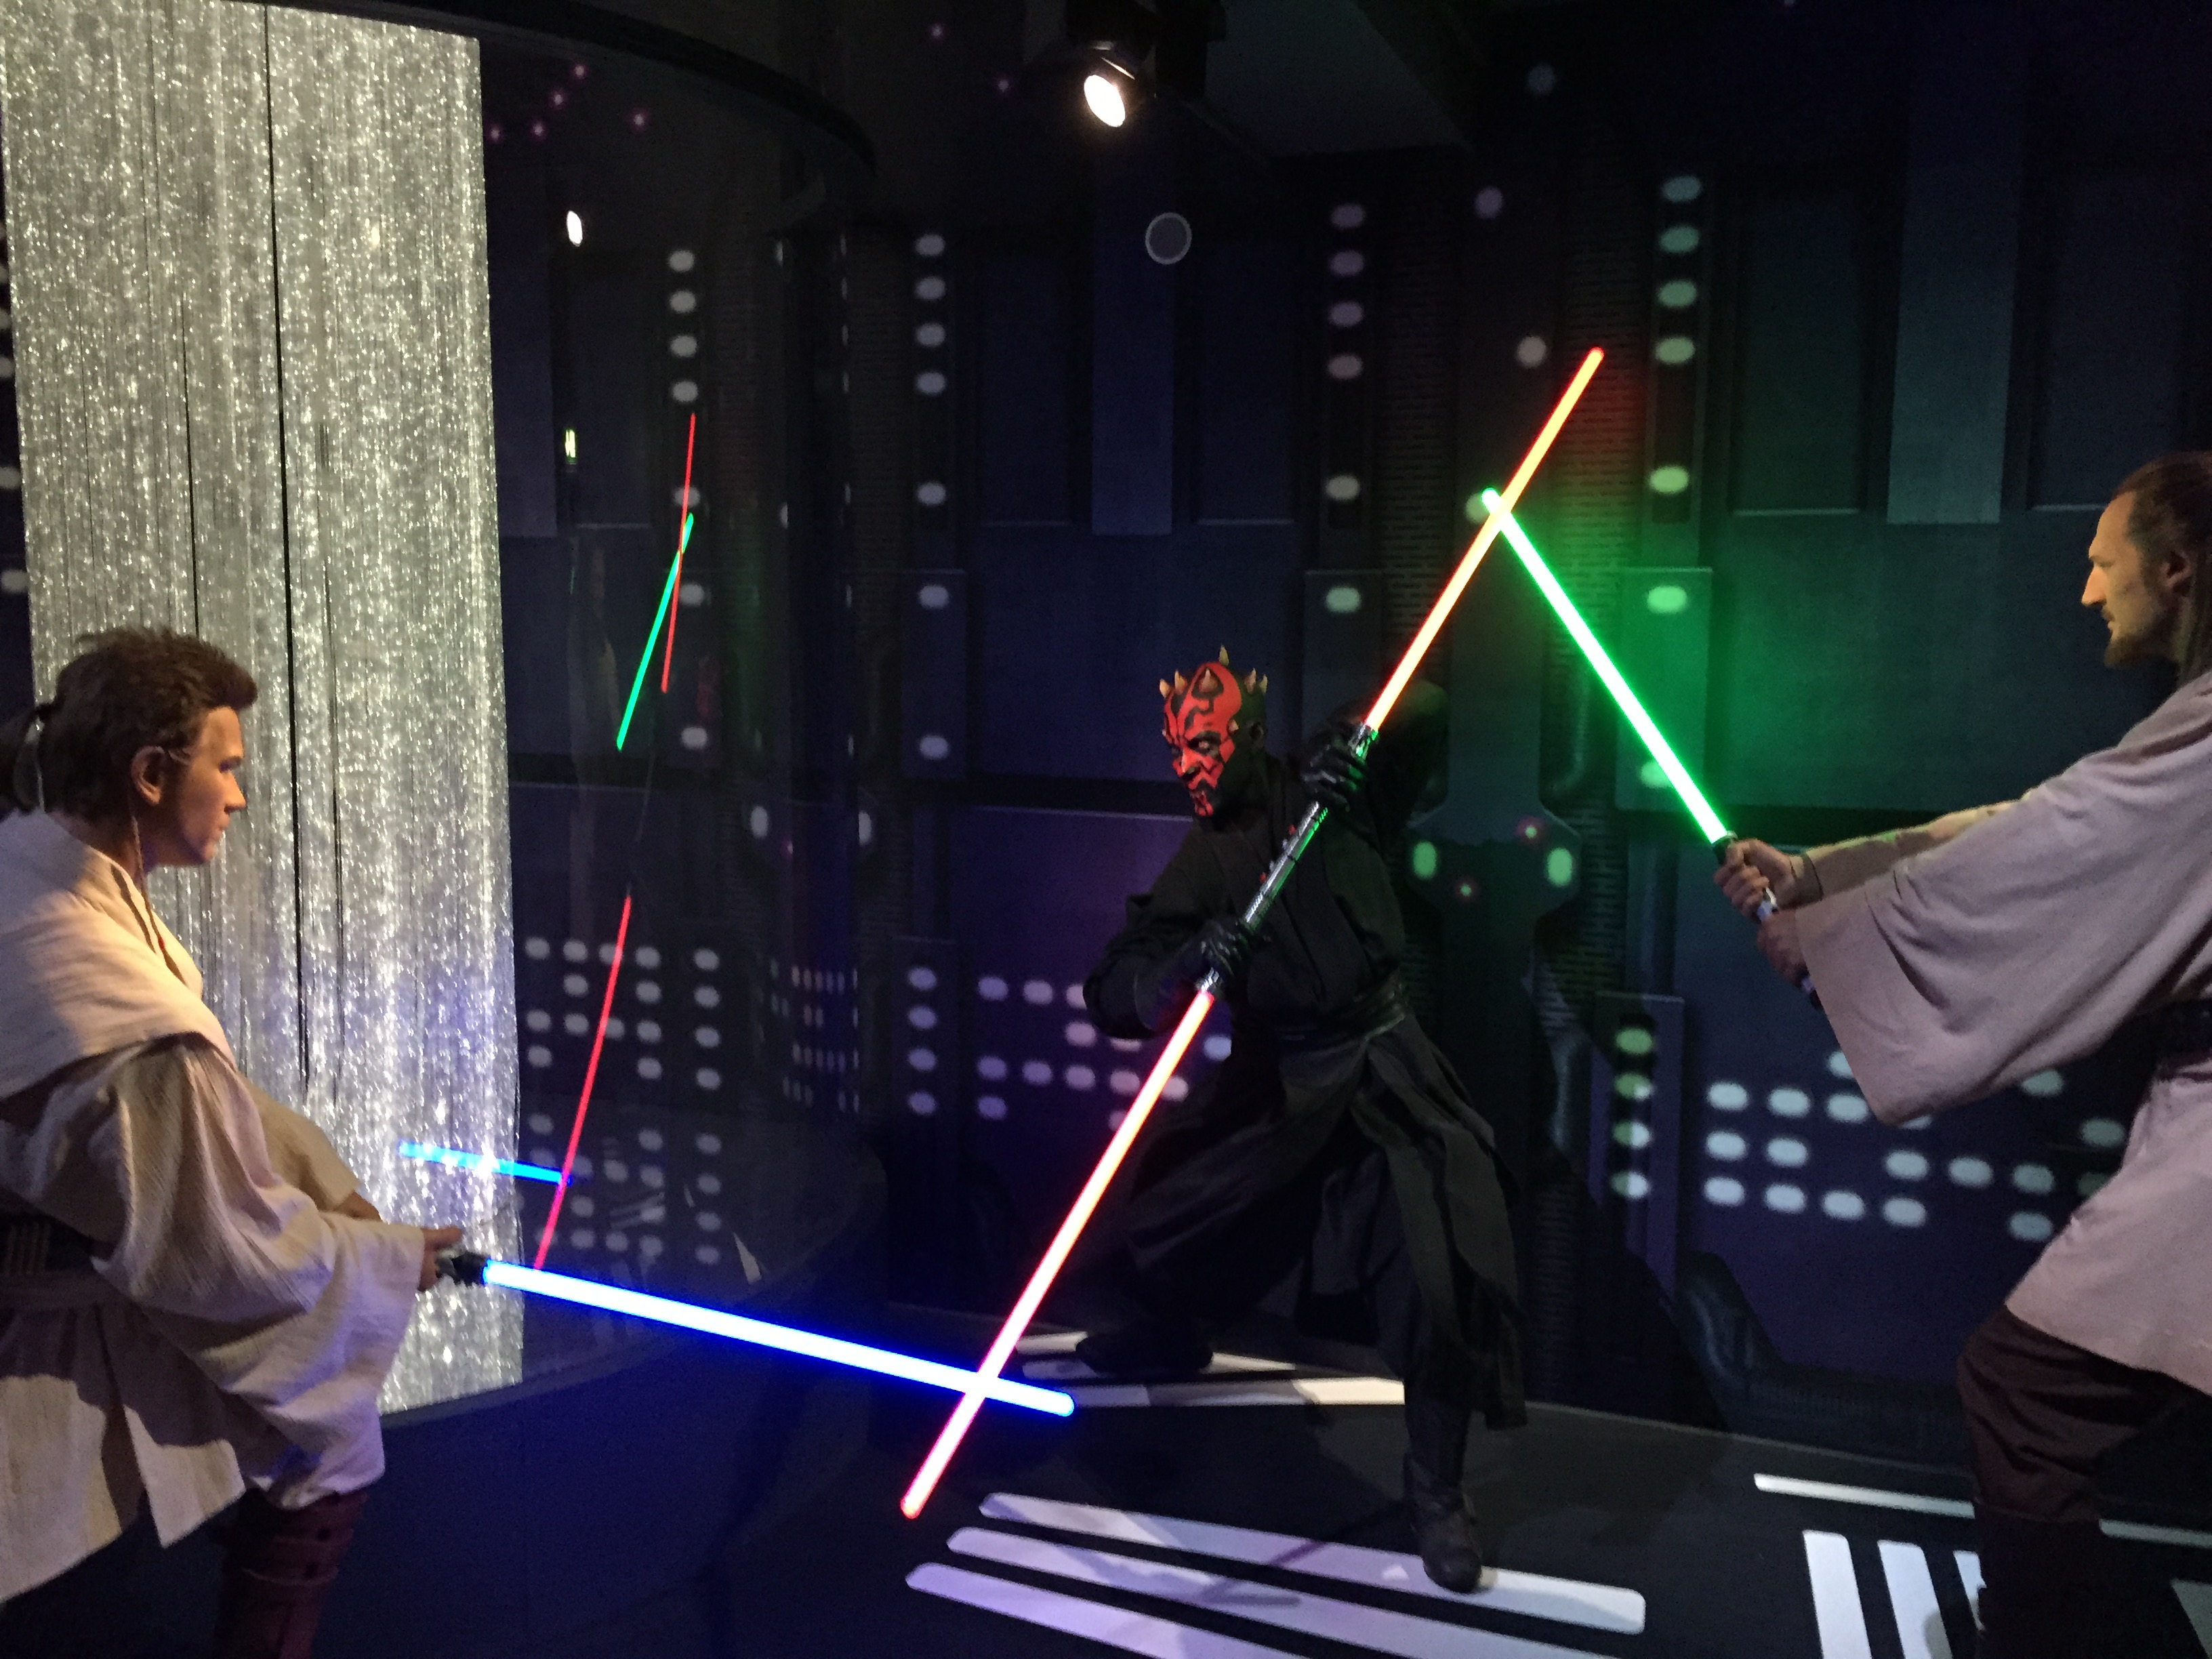 Jedi fight - Star Wars Madame Tussauds